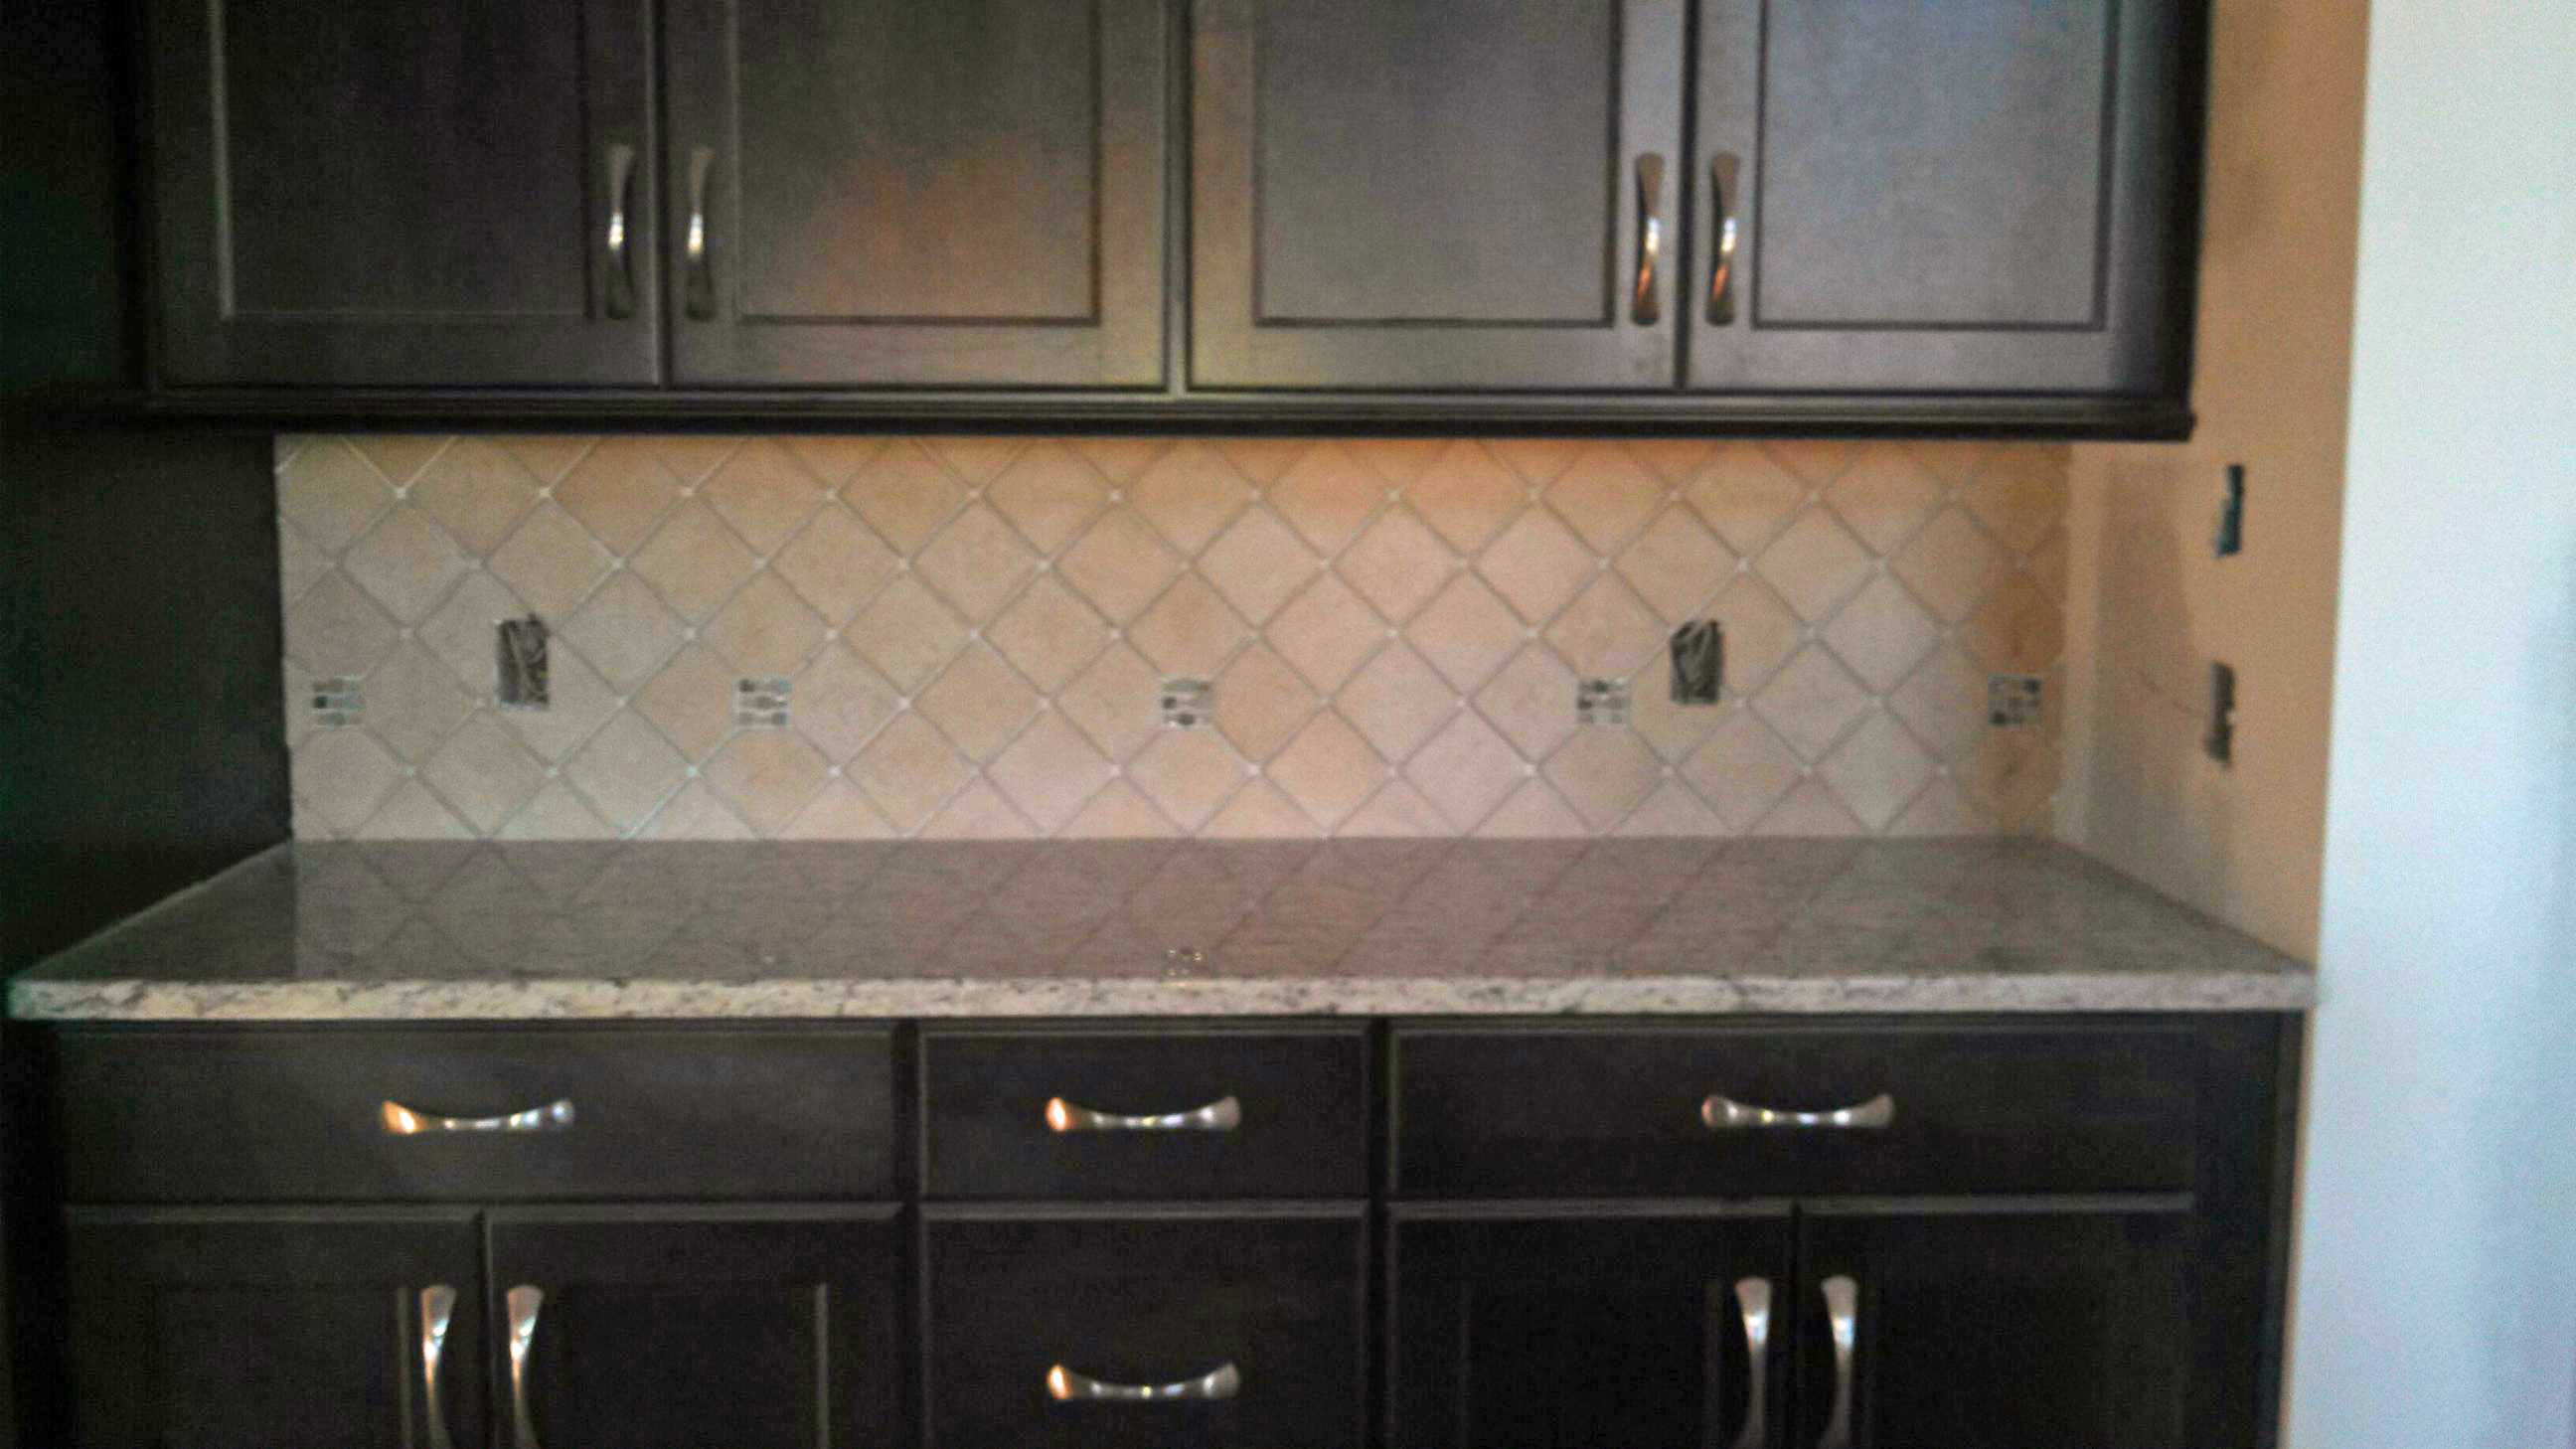 dark kitchen cabinets backsplash ideas kitchen cabinets backsplash ideas hawk 8560